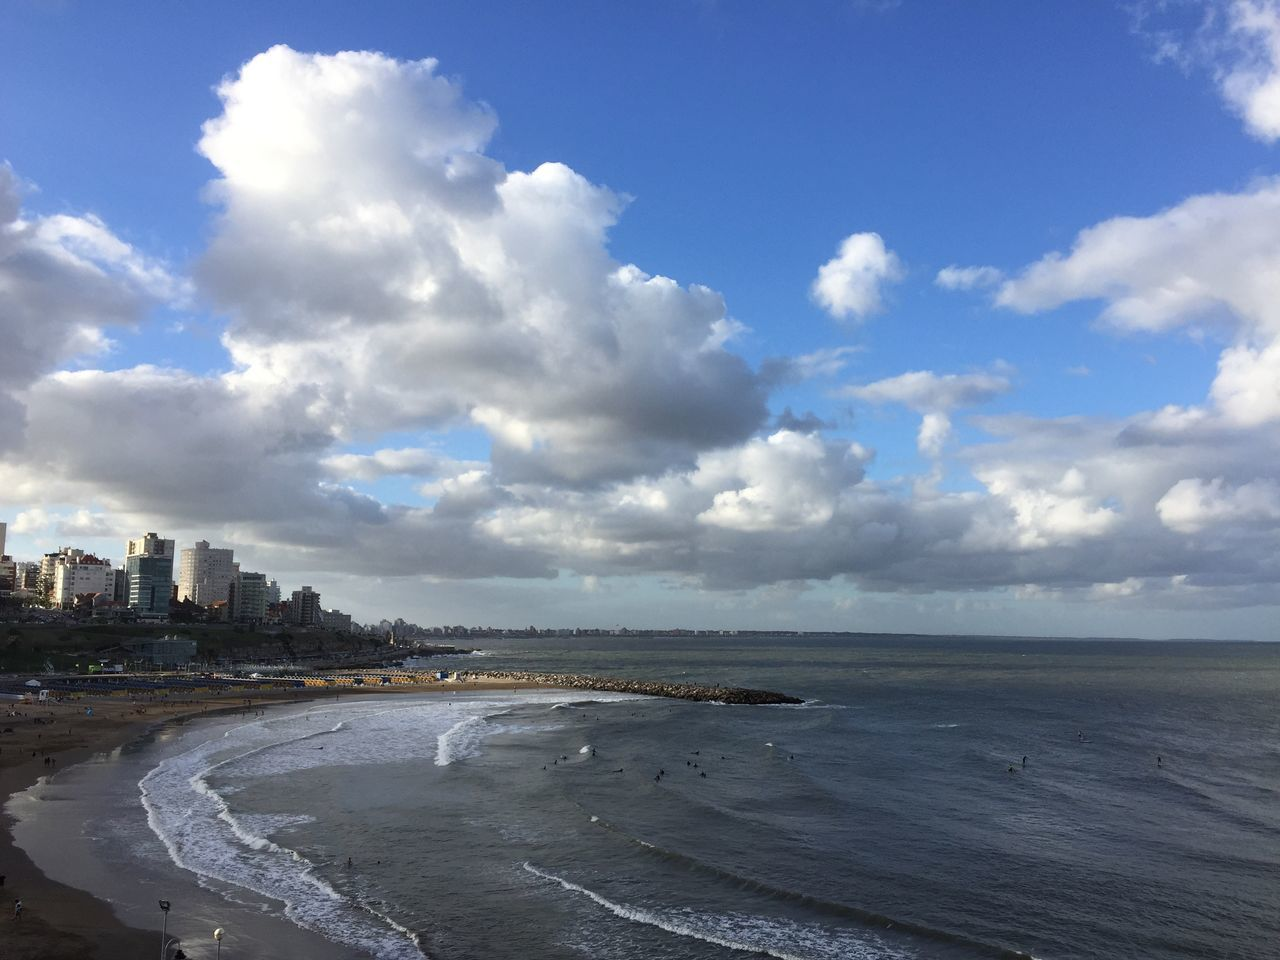 cloud - sky, sea, sky, architecture, water, built structure, travel destinations, city, beach, building exterior, scenics, skyscraper, cityscape, nature, outdoors, horizon over water, day, beauty in nature, no people, sand, modern, urban skyline